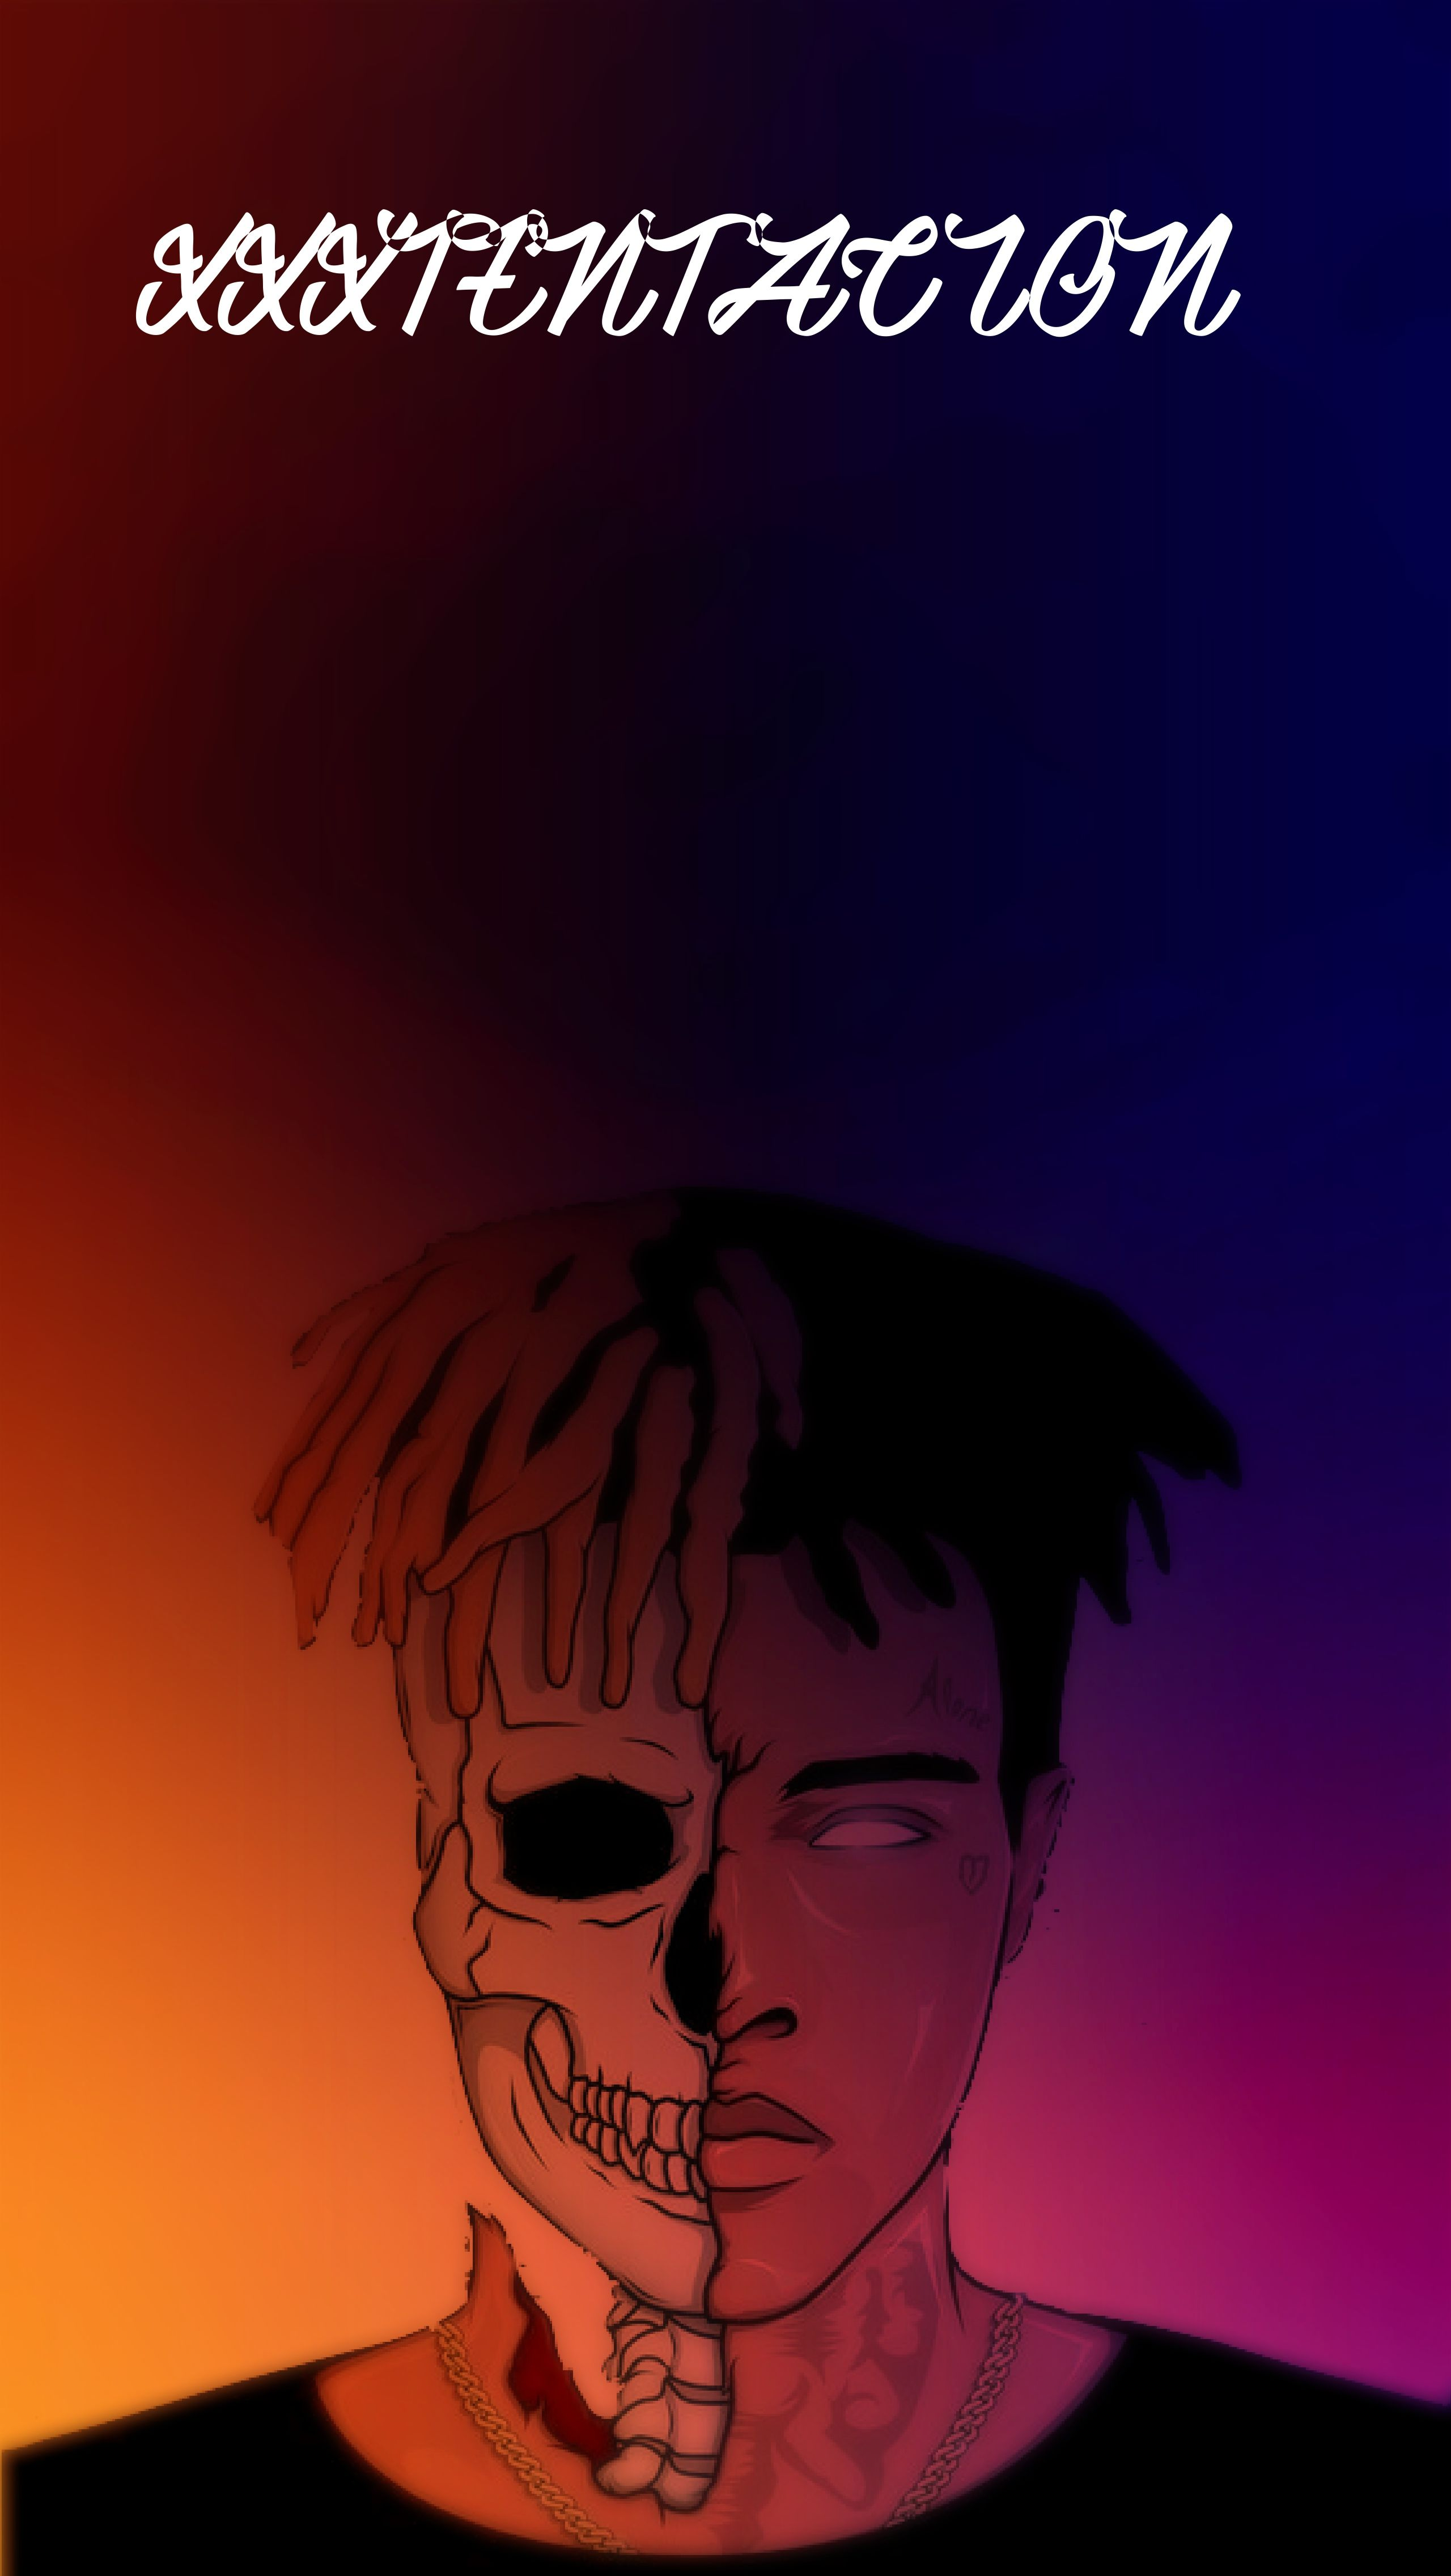 2560x4544 xxxtentacion wallpaper | Song lyrics | Wallpaper, Screen wallpaper ...